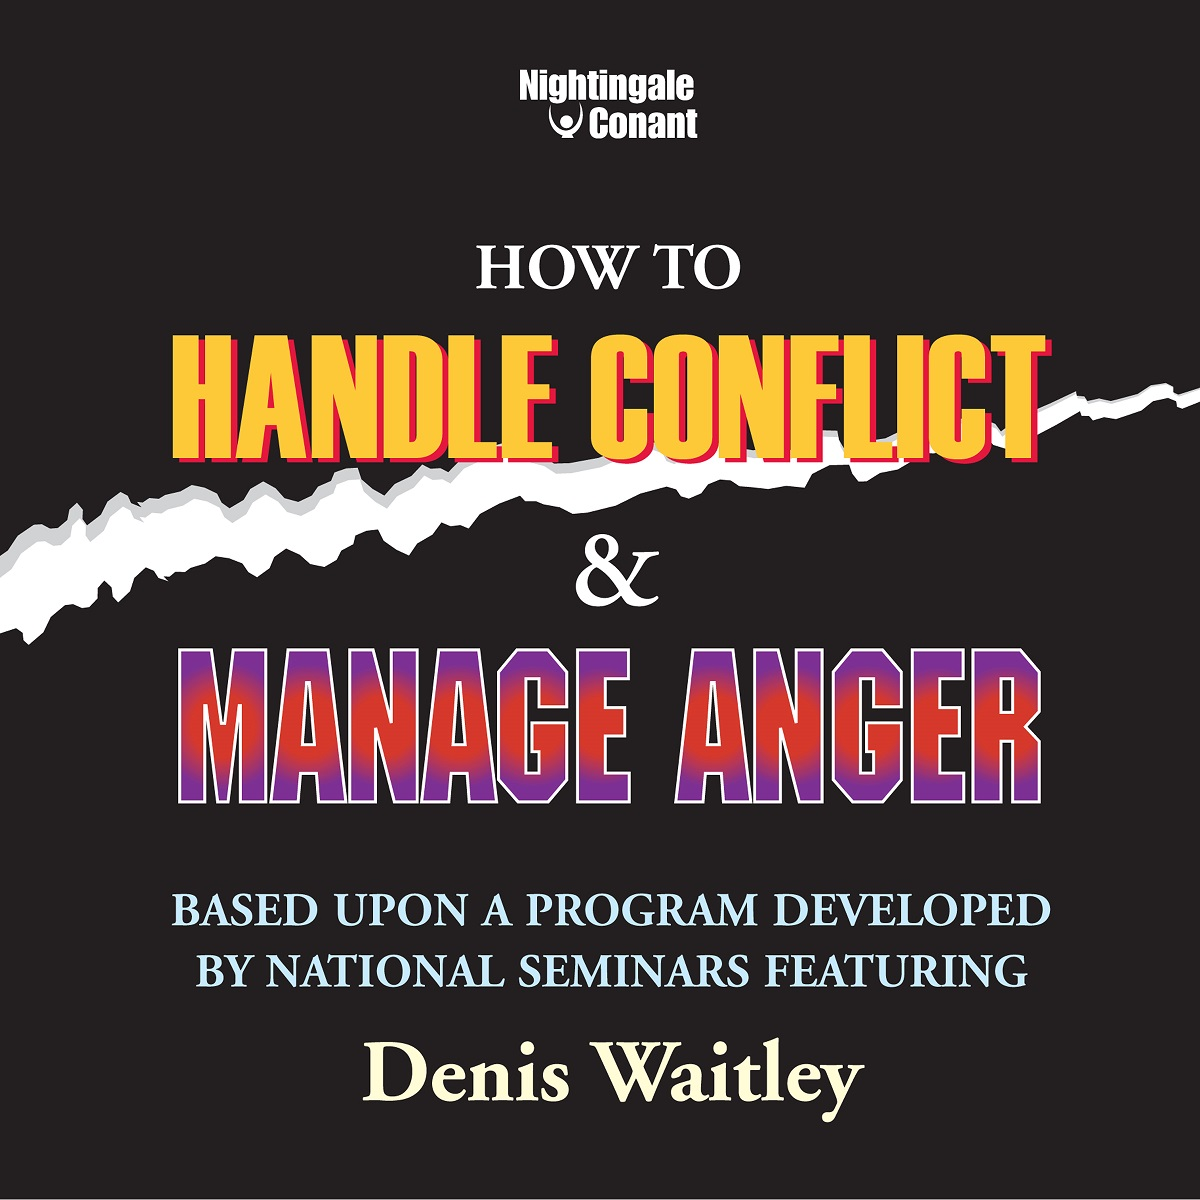 How to Handle Conflict and Manage Anger